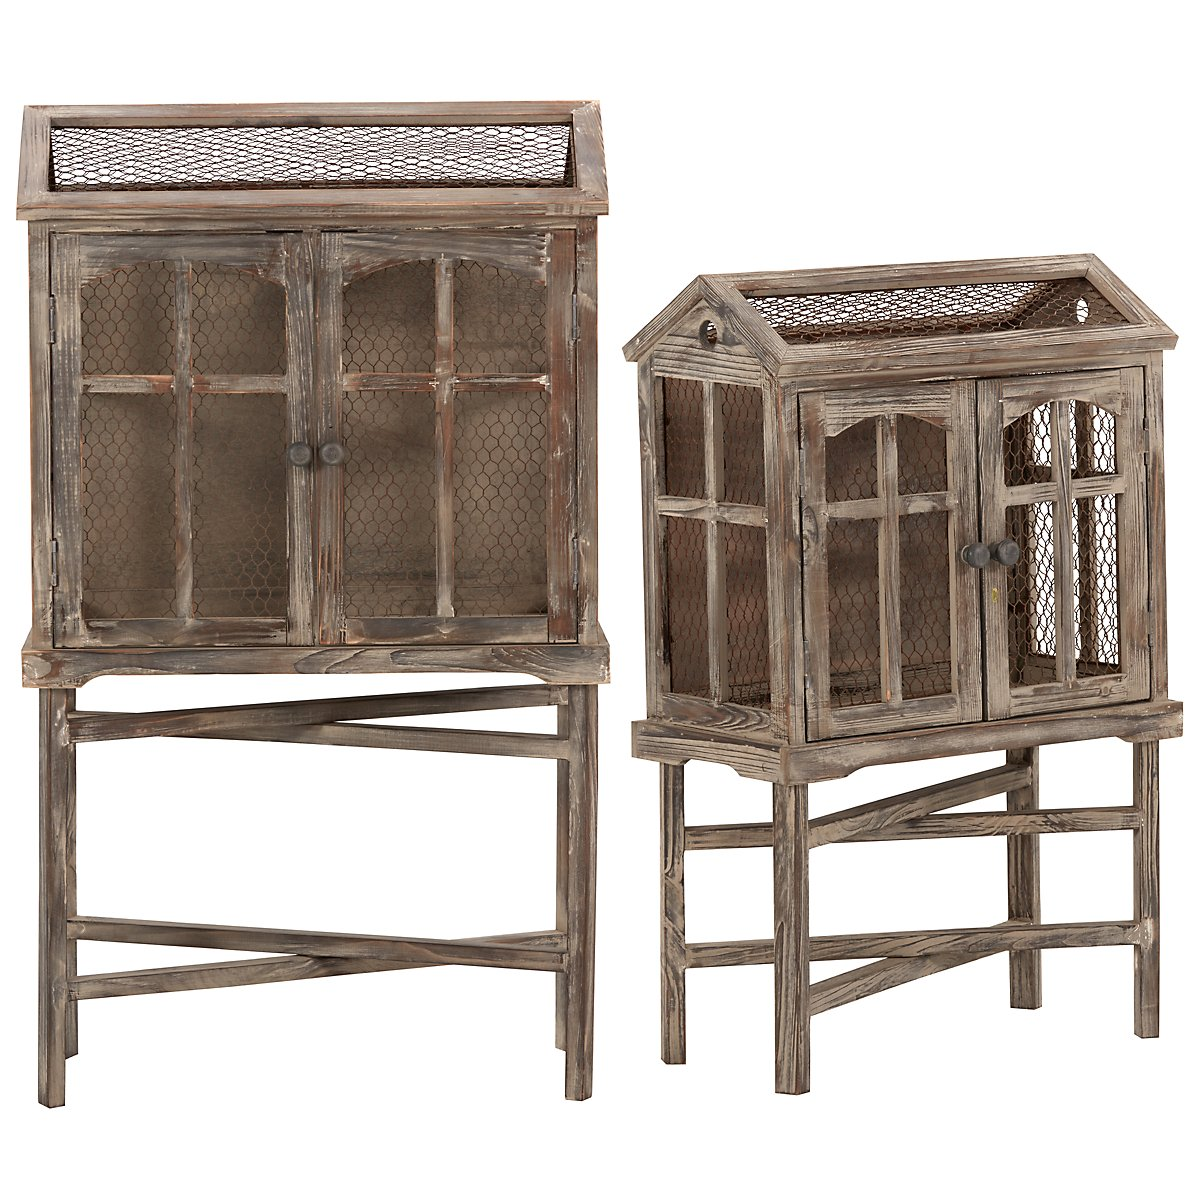 Bird Cage Wood Set Of 2 2-door Cabinet